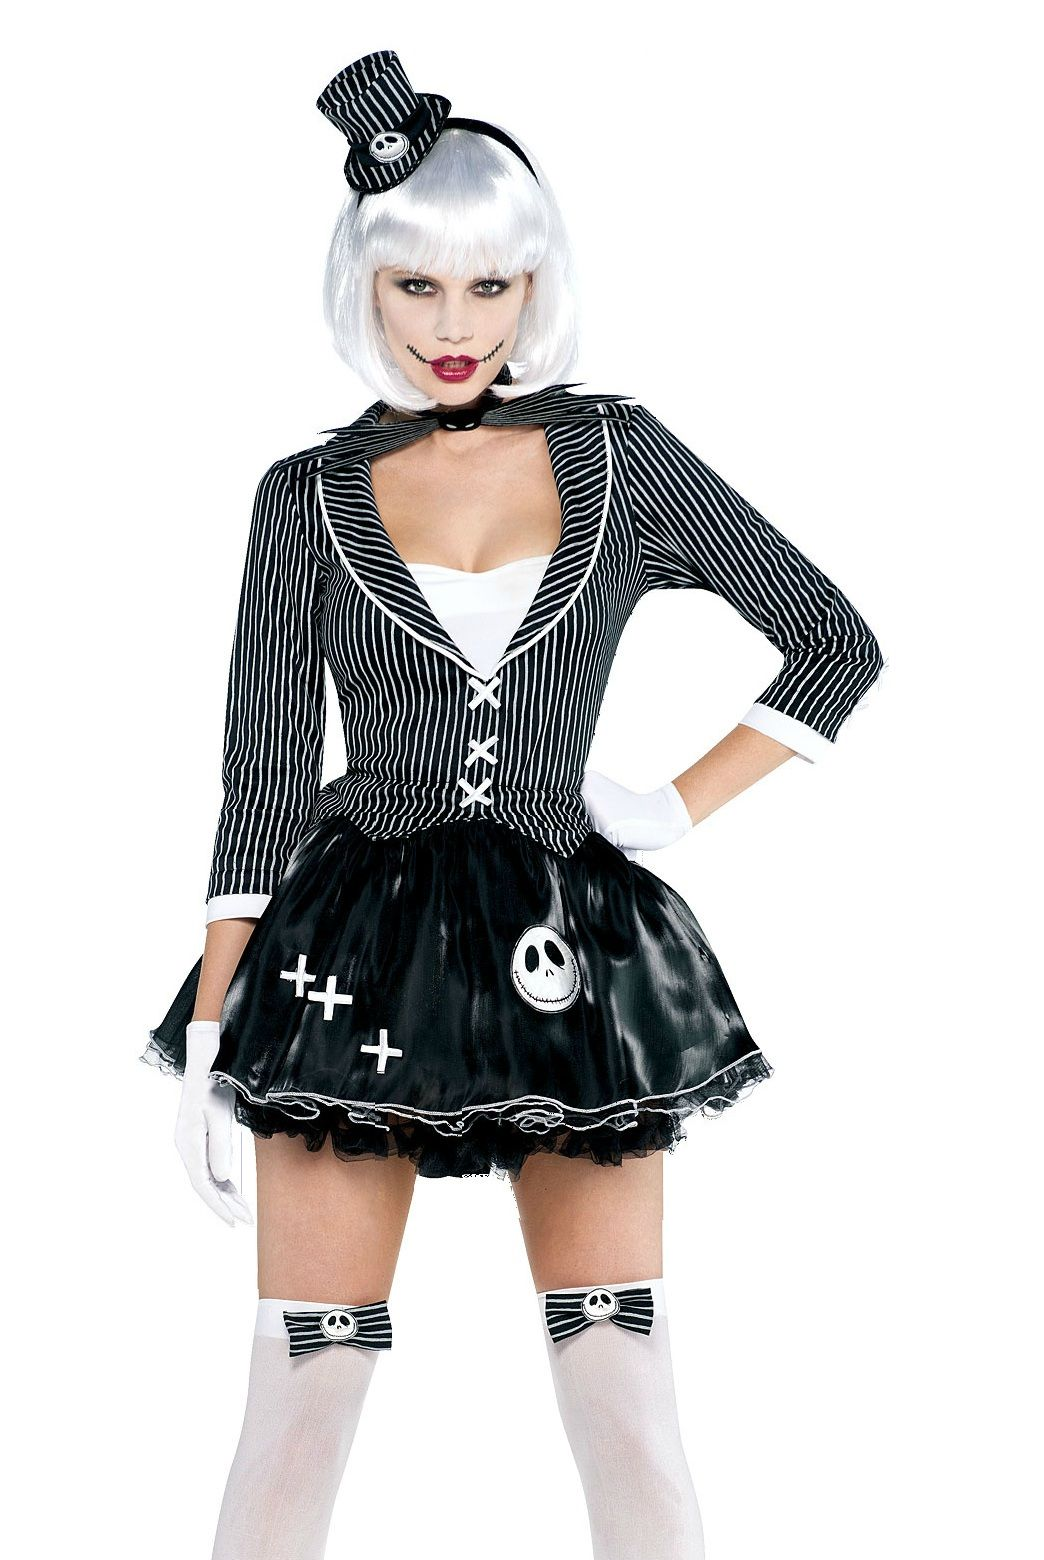 nightmare before christmas lingerie - Google Search | Costumes in ...